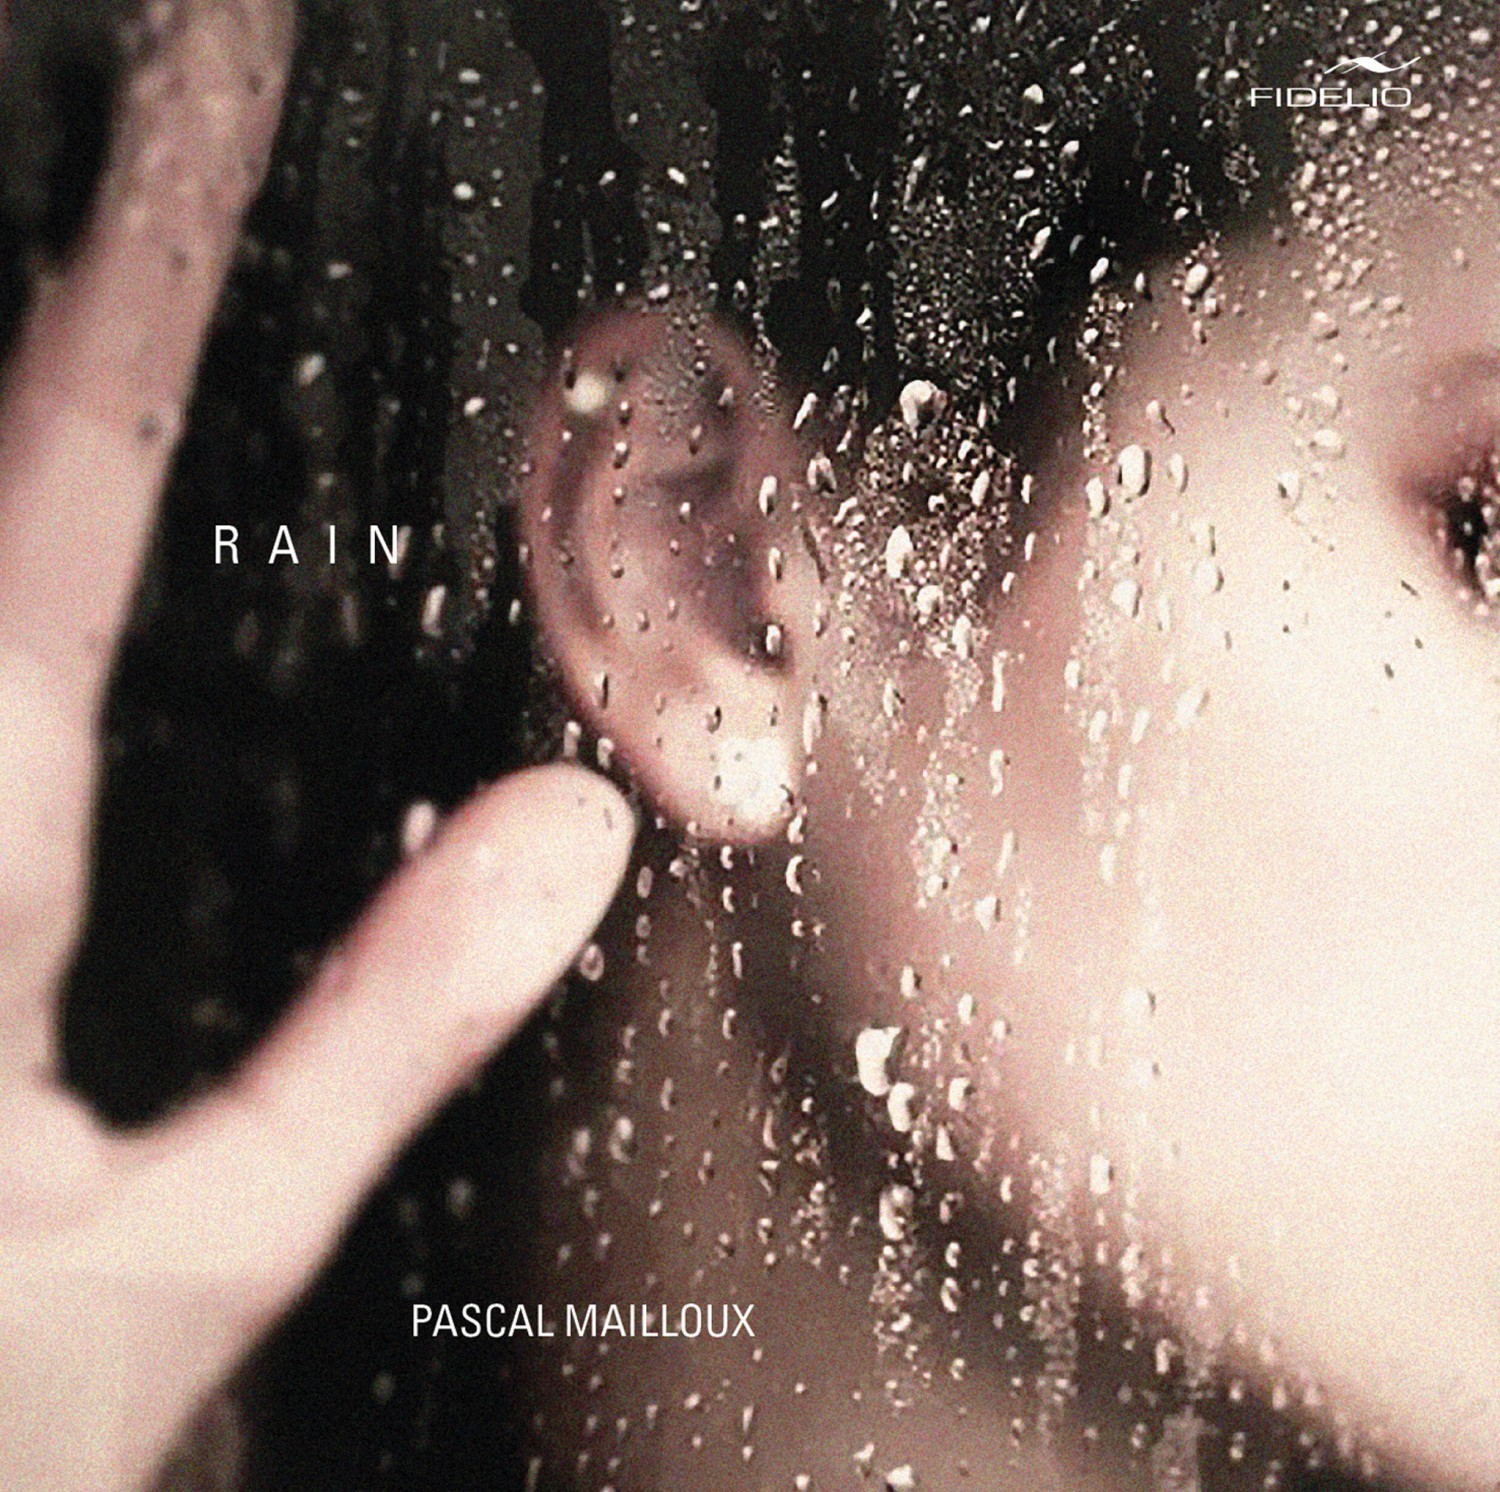 Download Pascal Mailloux - Rain (Fidelio Records) im Test, Bild 1